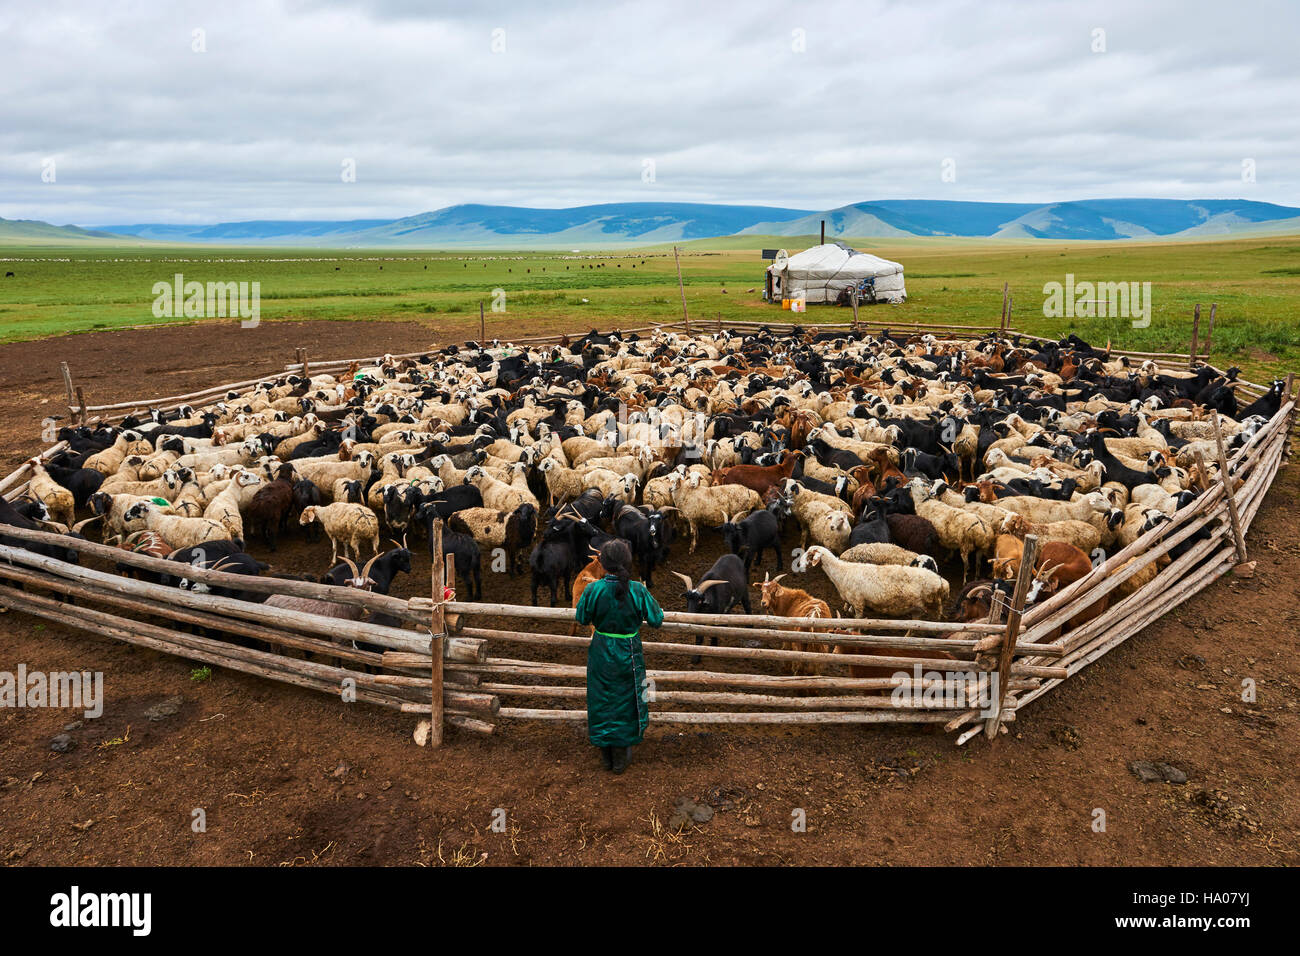 Mongolia, Arkhangai province, nomad camp, sheep herd - Stock Image